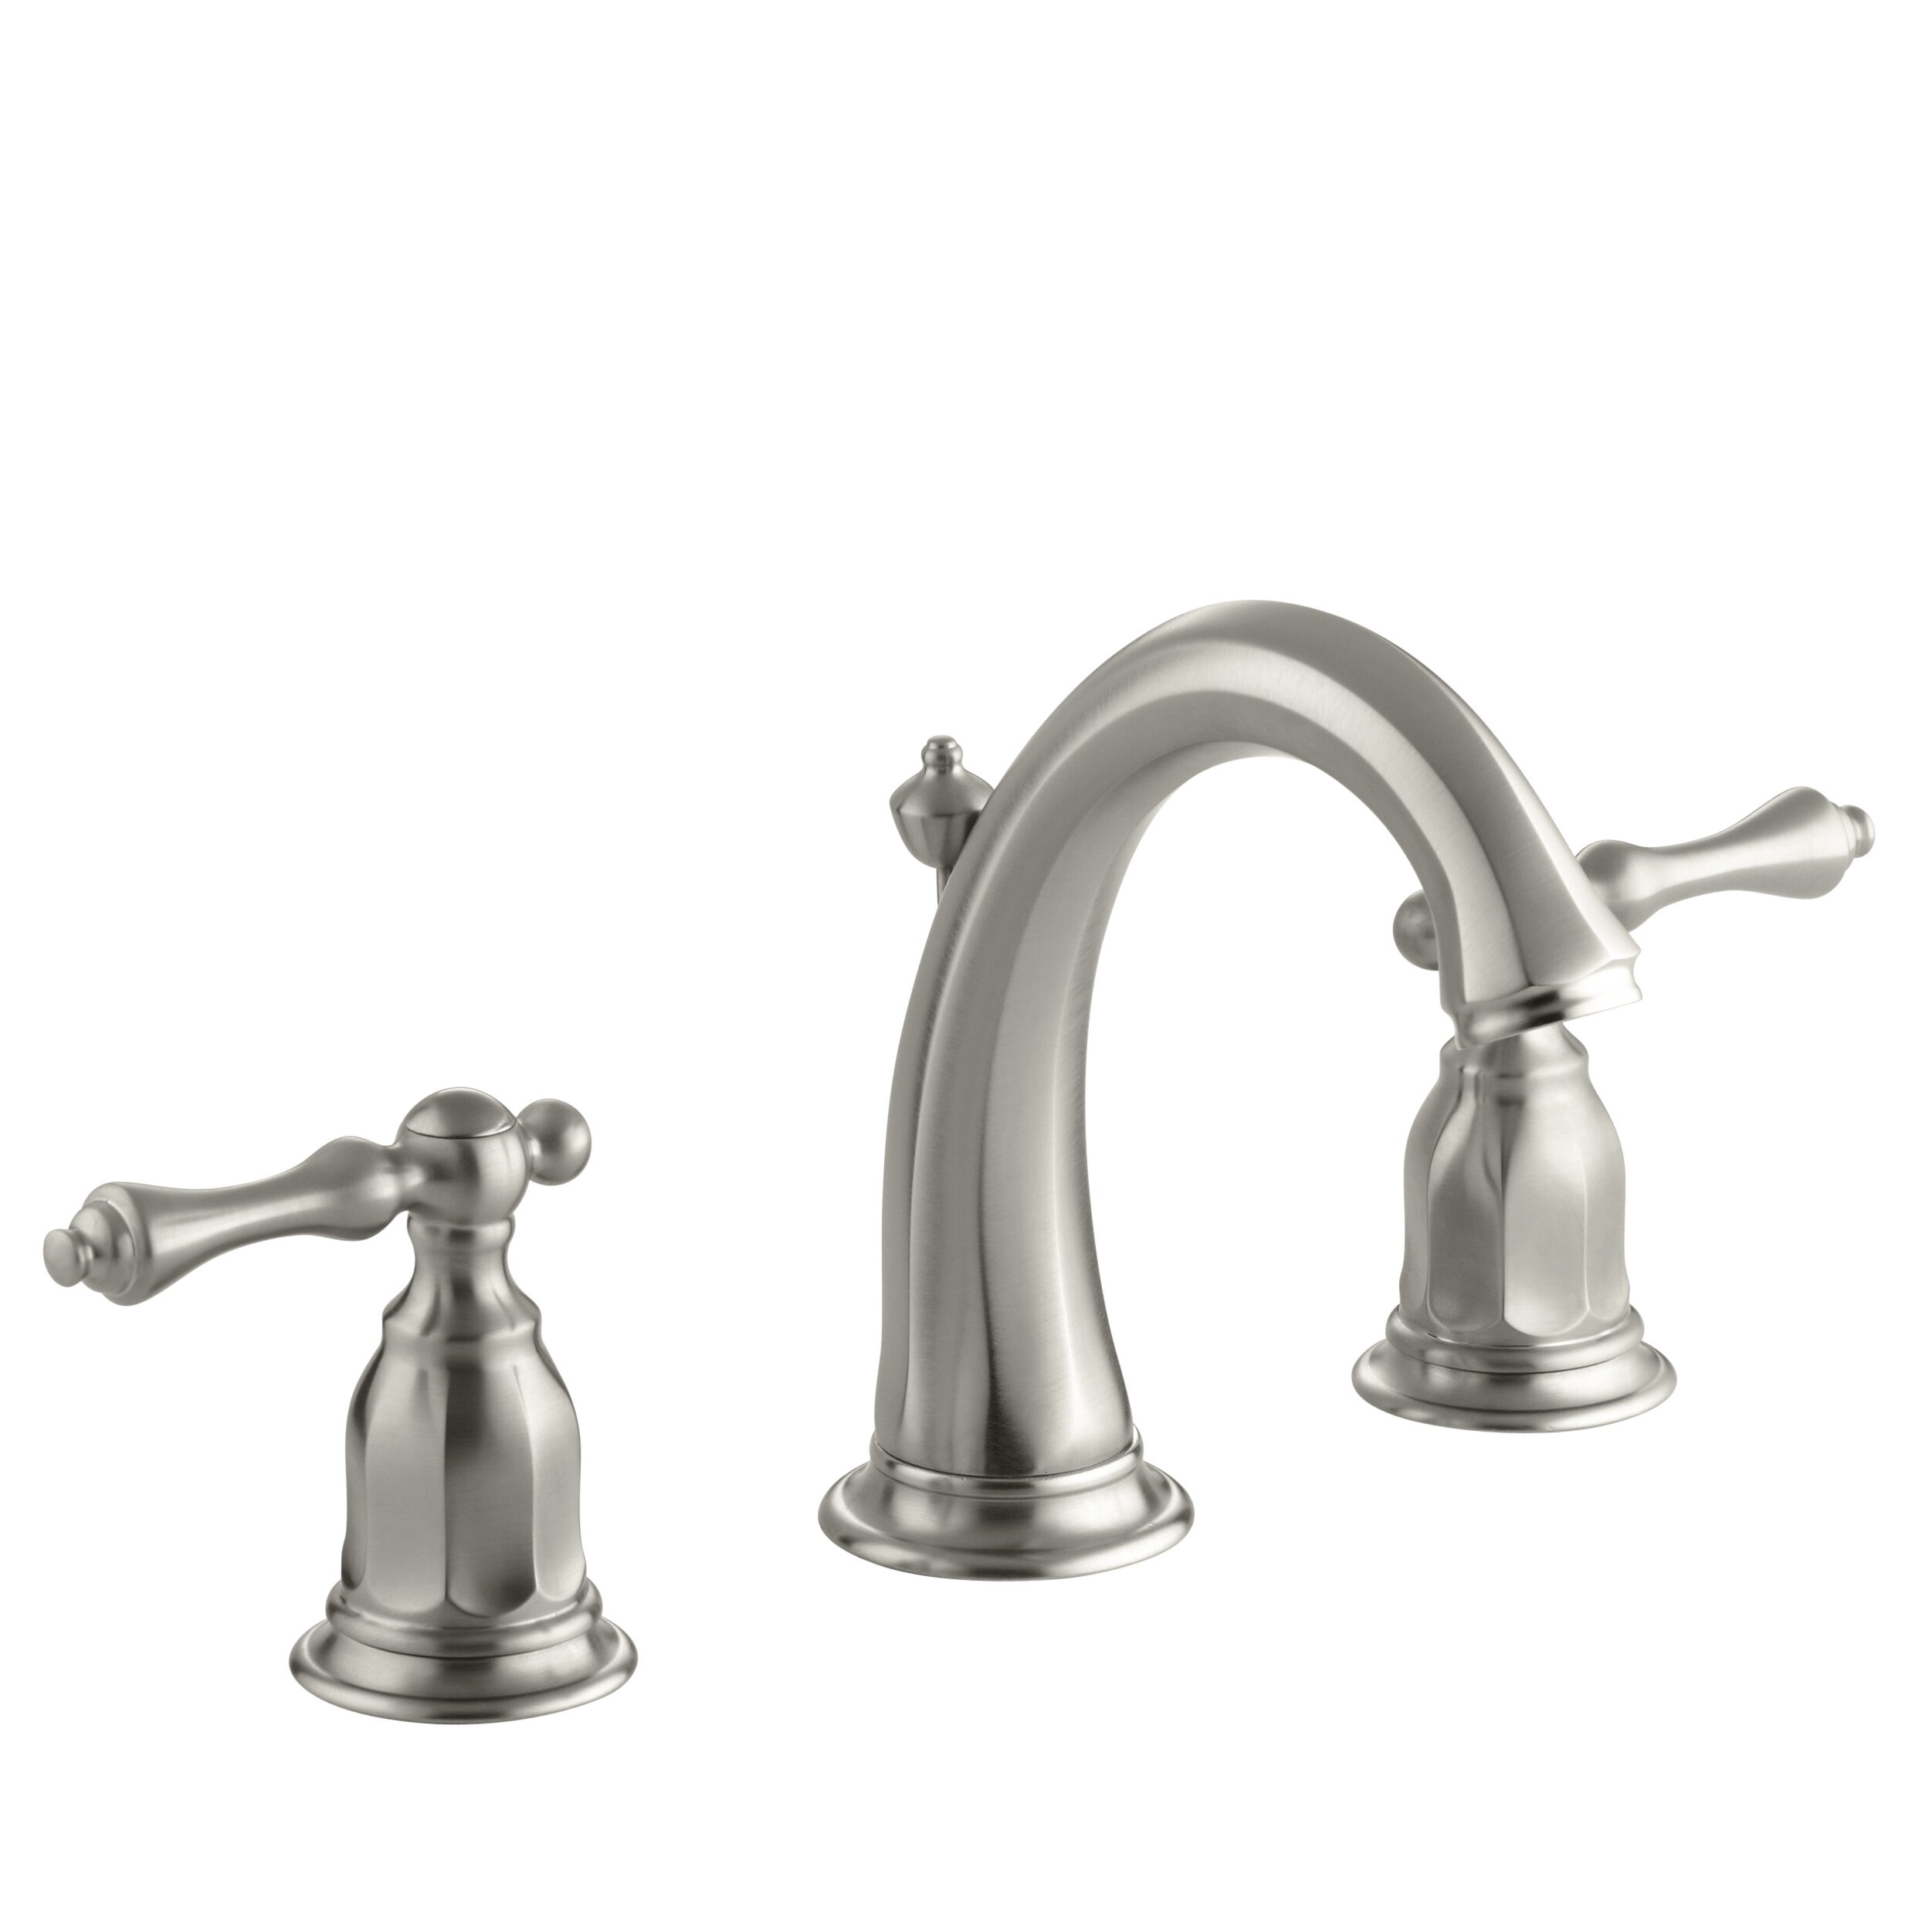 Kohler kelston widespread bathroom sink faucet reviews for Bathroom sink faucets